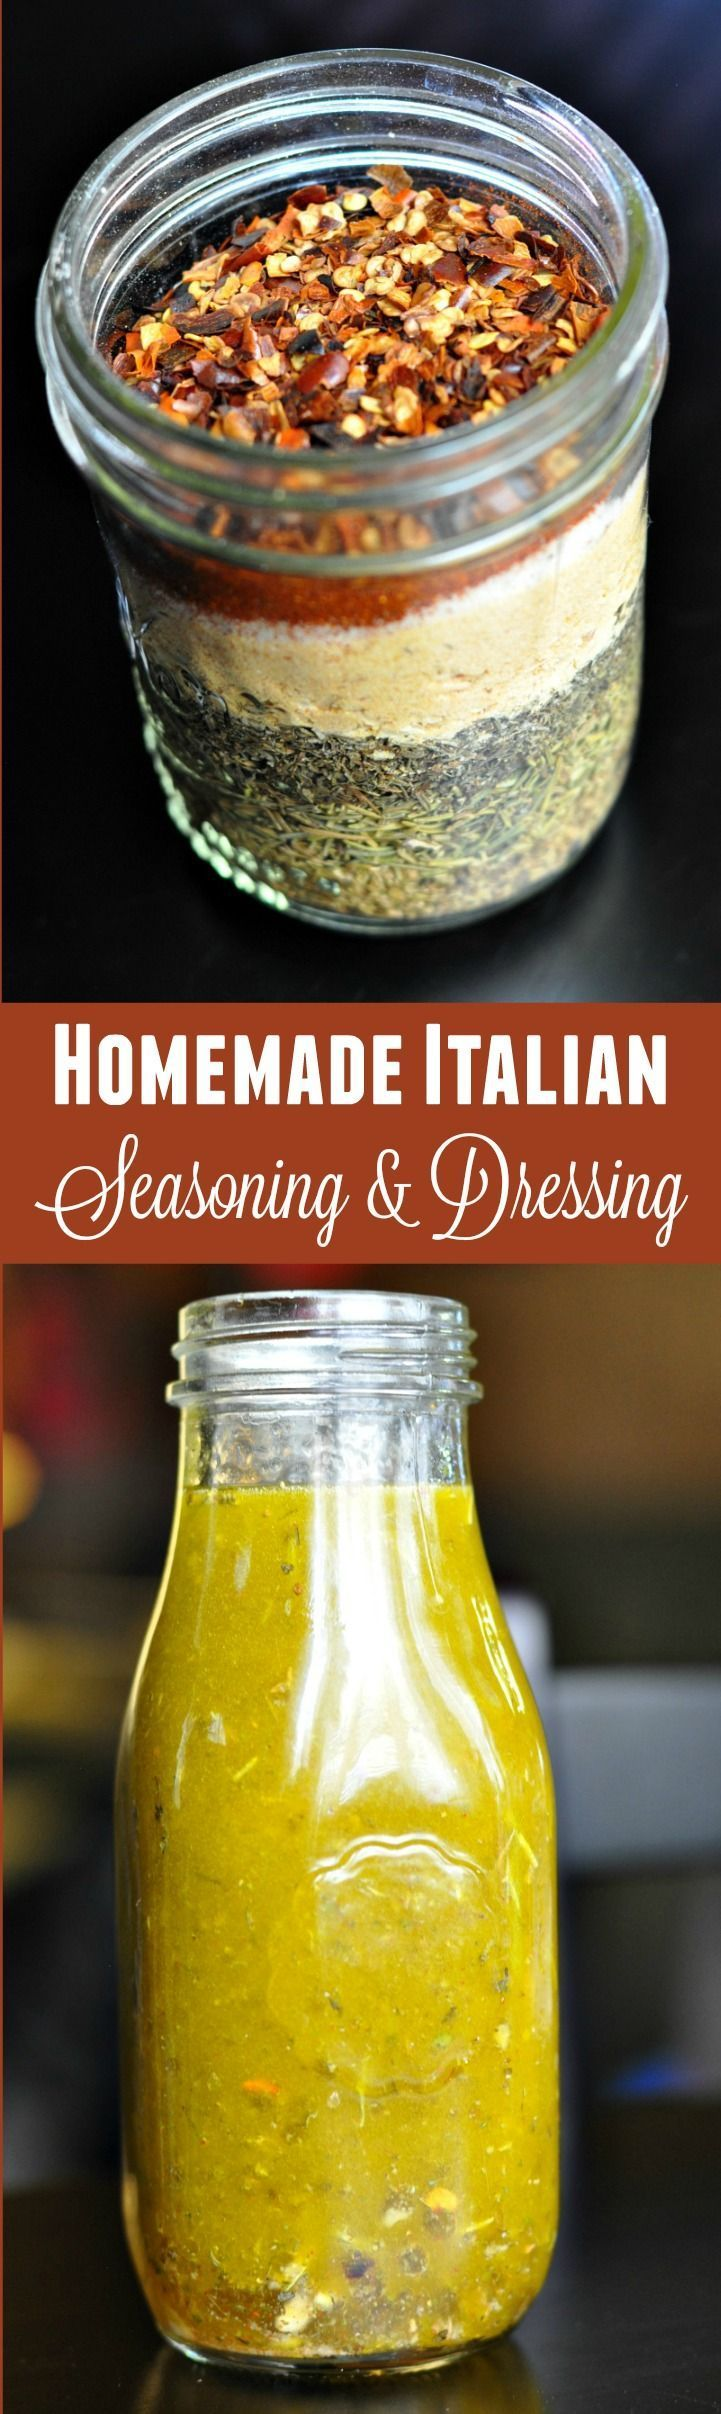 It's so easy to make your own Italian seasoning spice mix and Italian dressing! All you need is a few simple ingredients to get started with these recipes